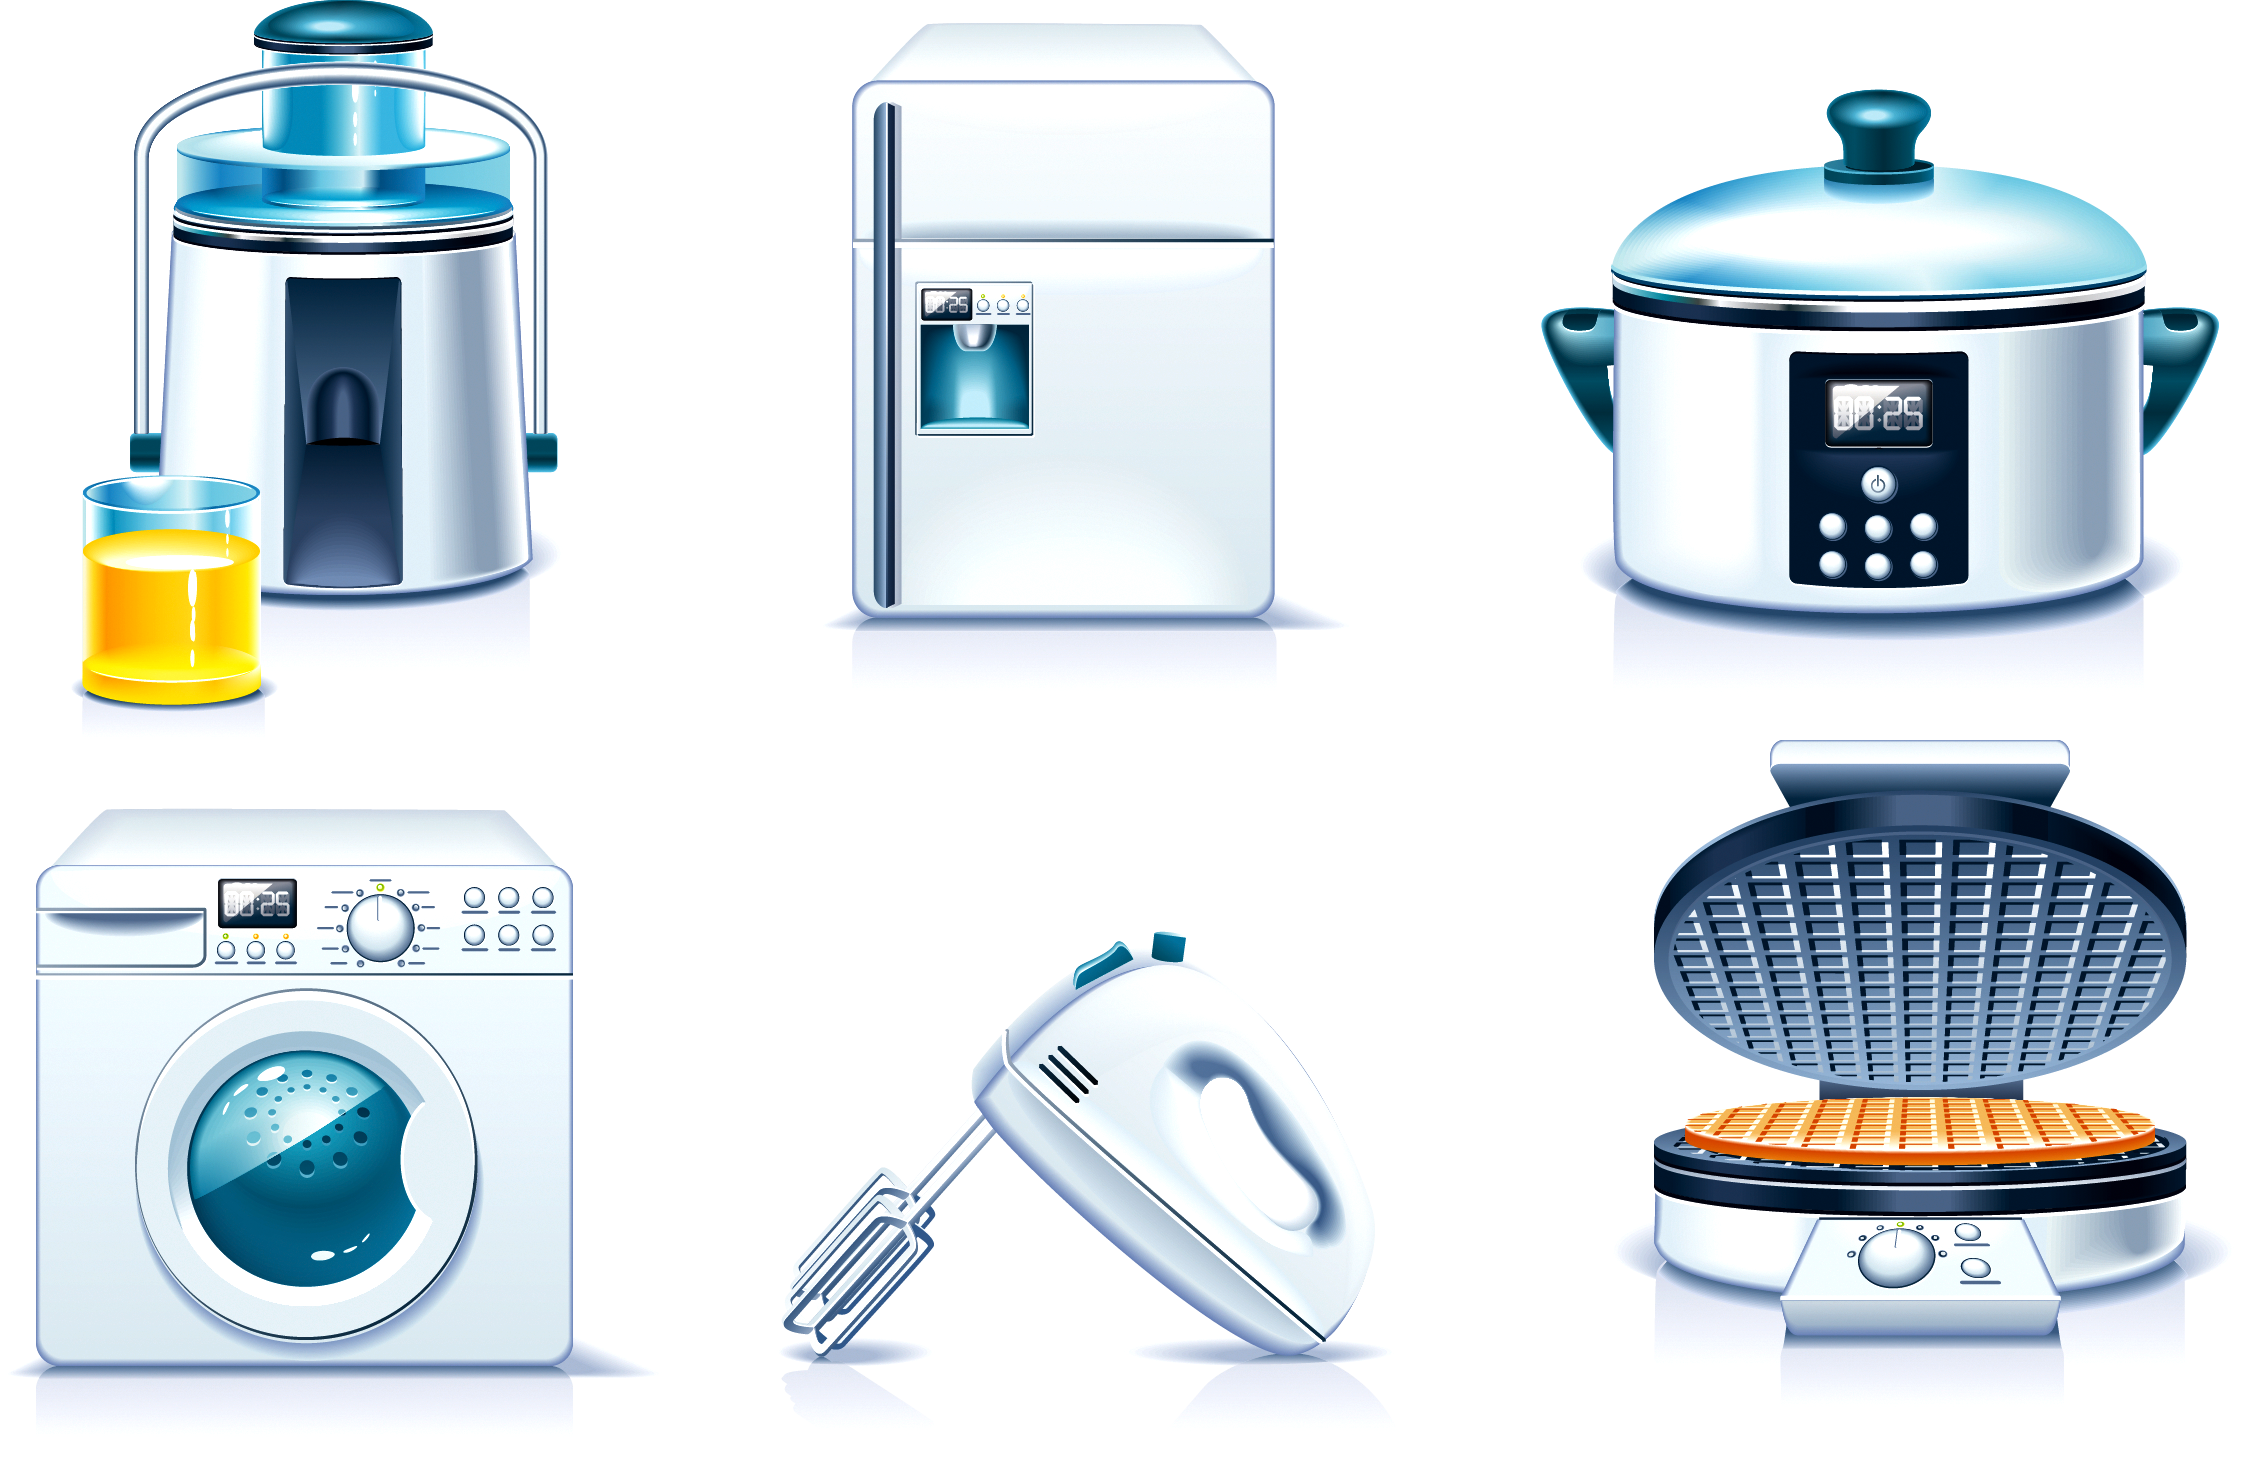 Clipart kitchen kitchen appliance. Home stock photography royalty